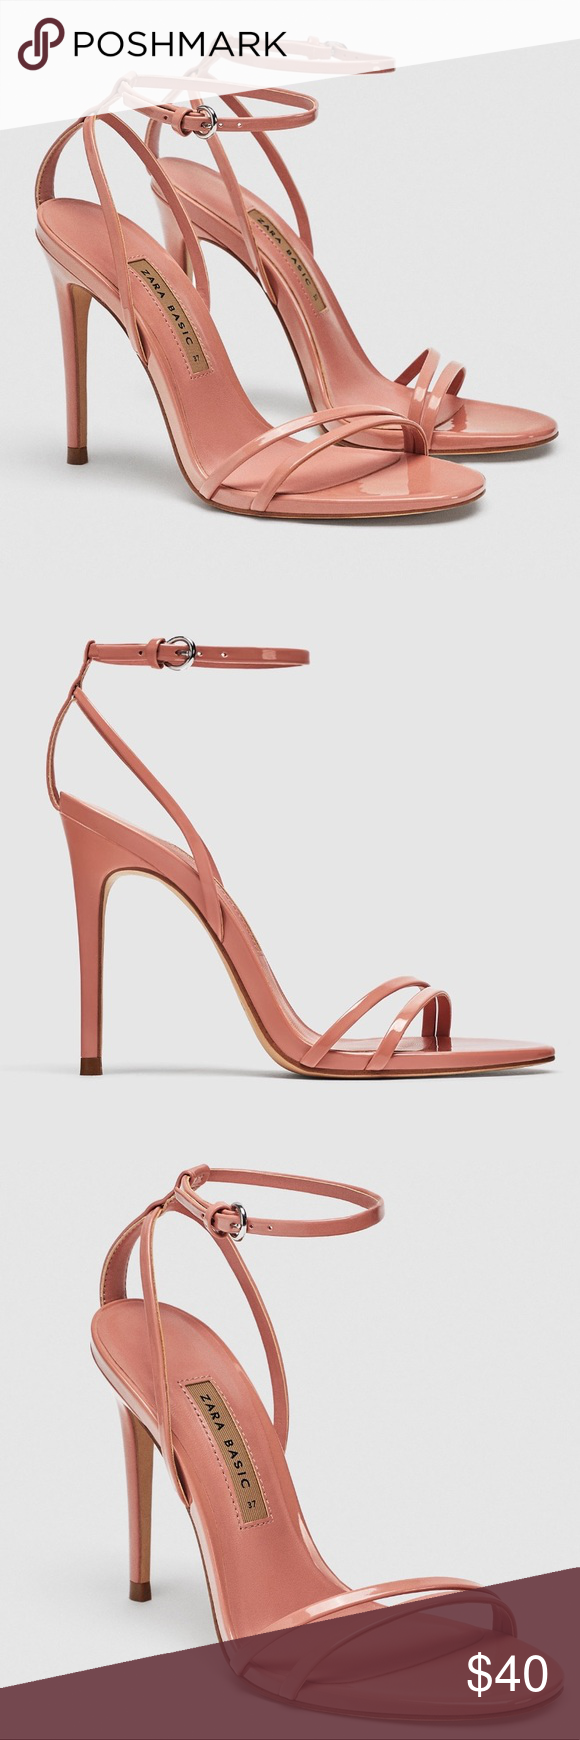 dddf03fcc147 ZARA LAMINATED PINK HIGH-HEEL STRAPPY SANDALS Used once. Zara LAMINATED  HIGH-HEEL